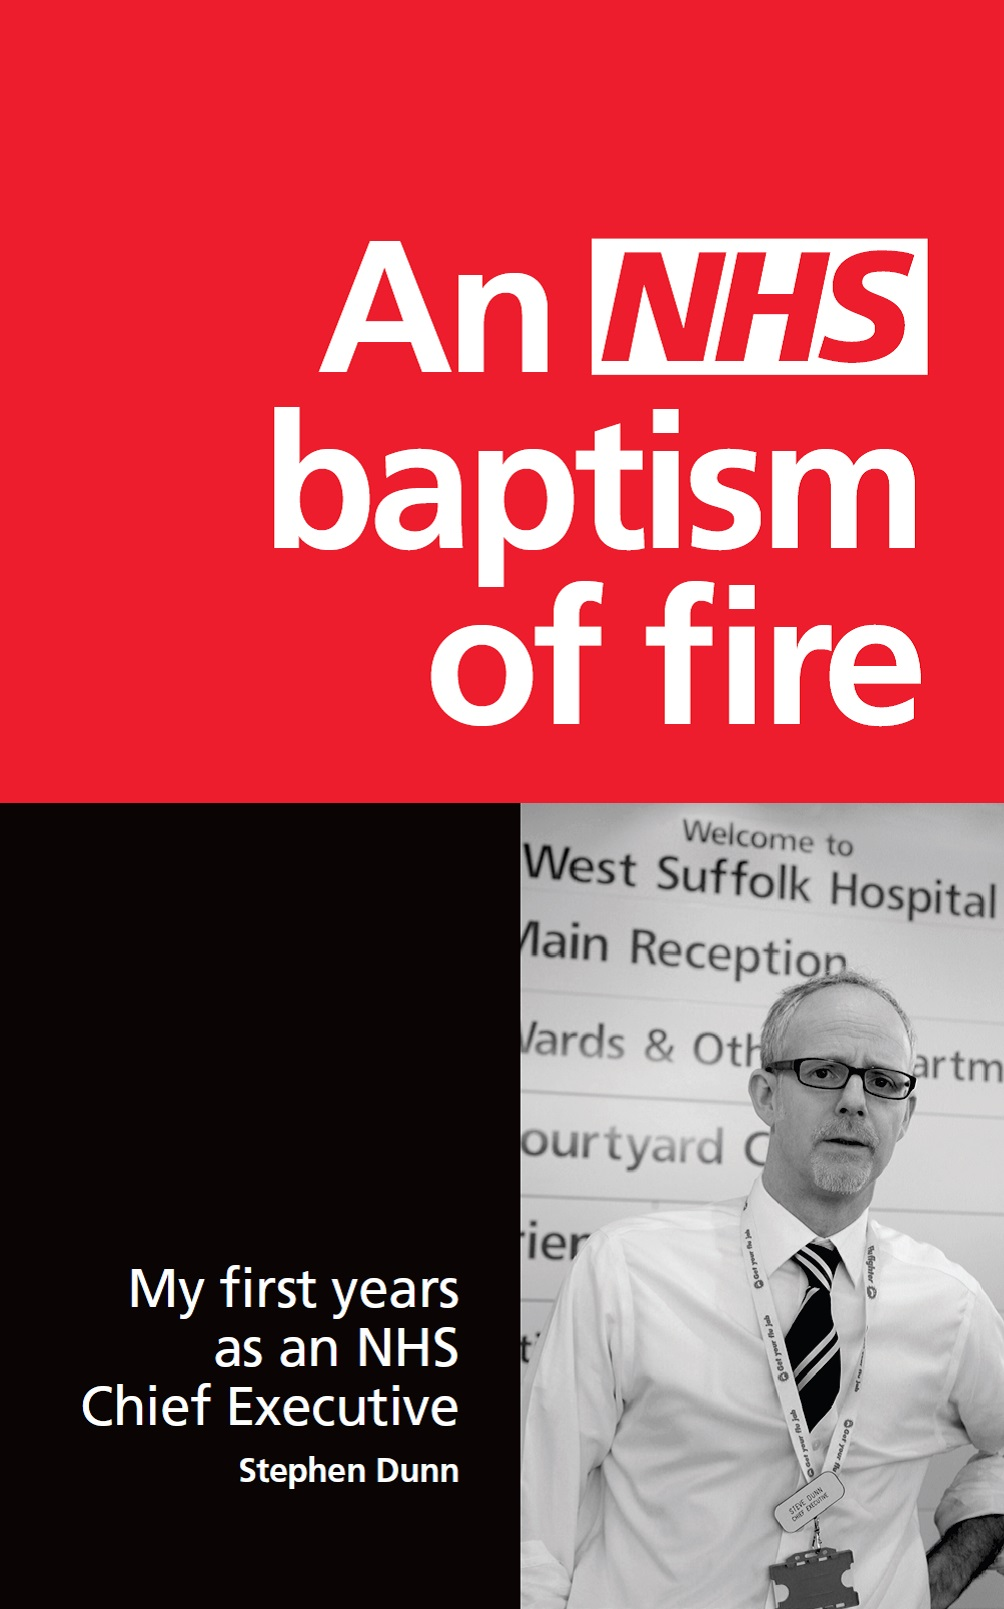 An NHS baptism of fire: My first years as an NHS Chief Executive - Dr Stephen Dunn's new book